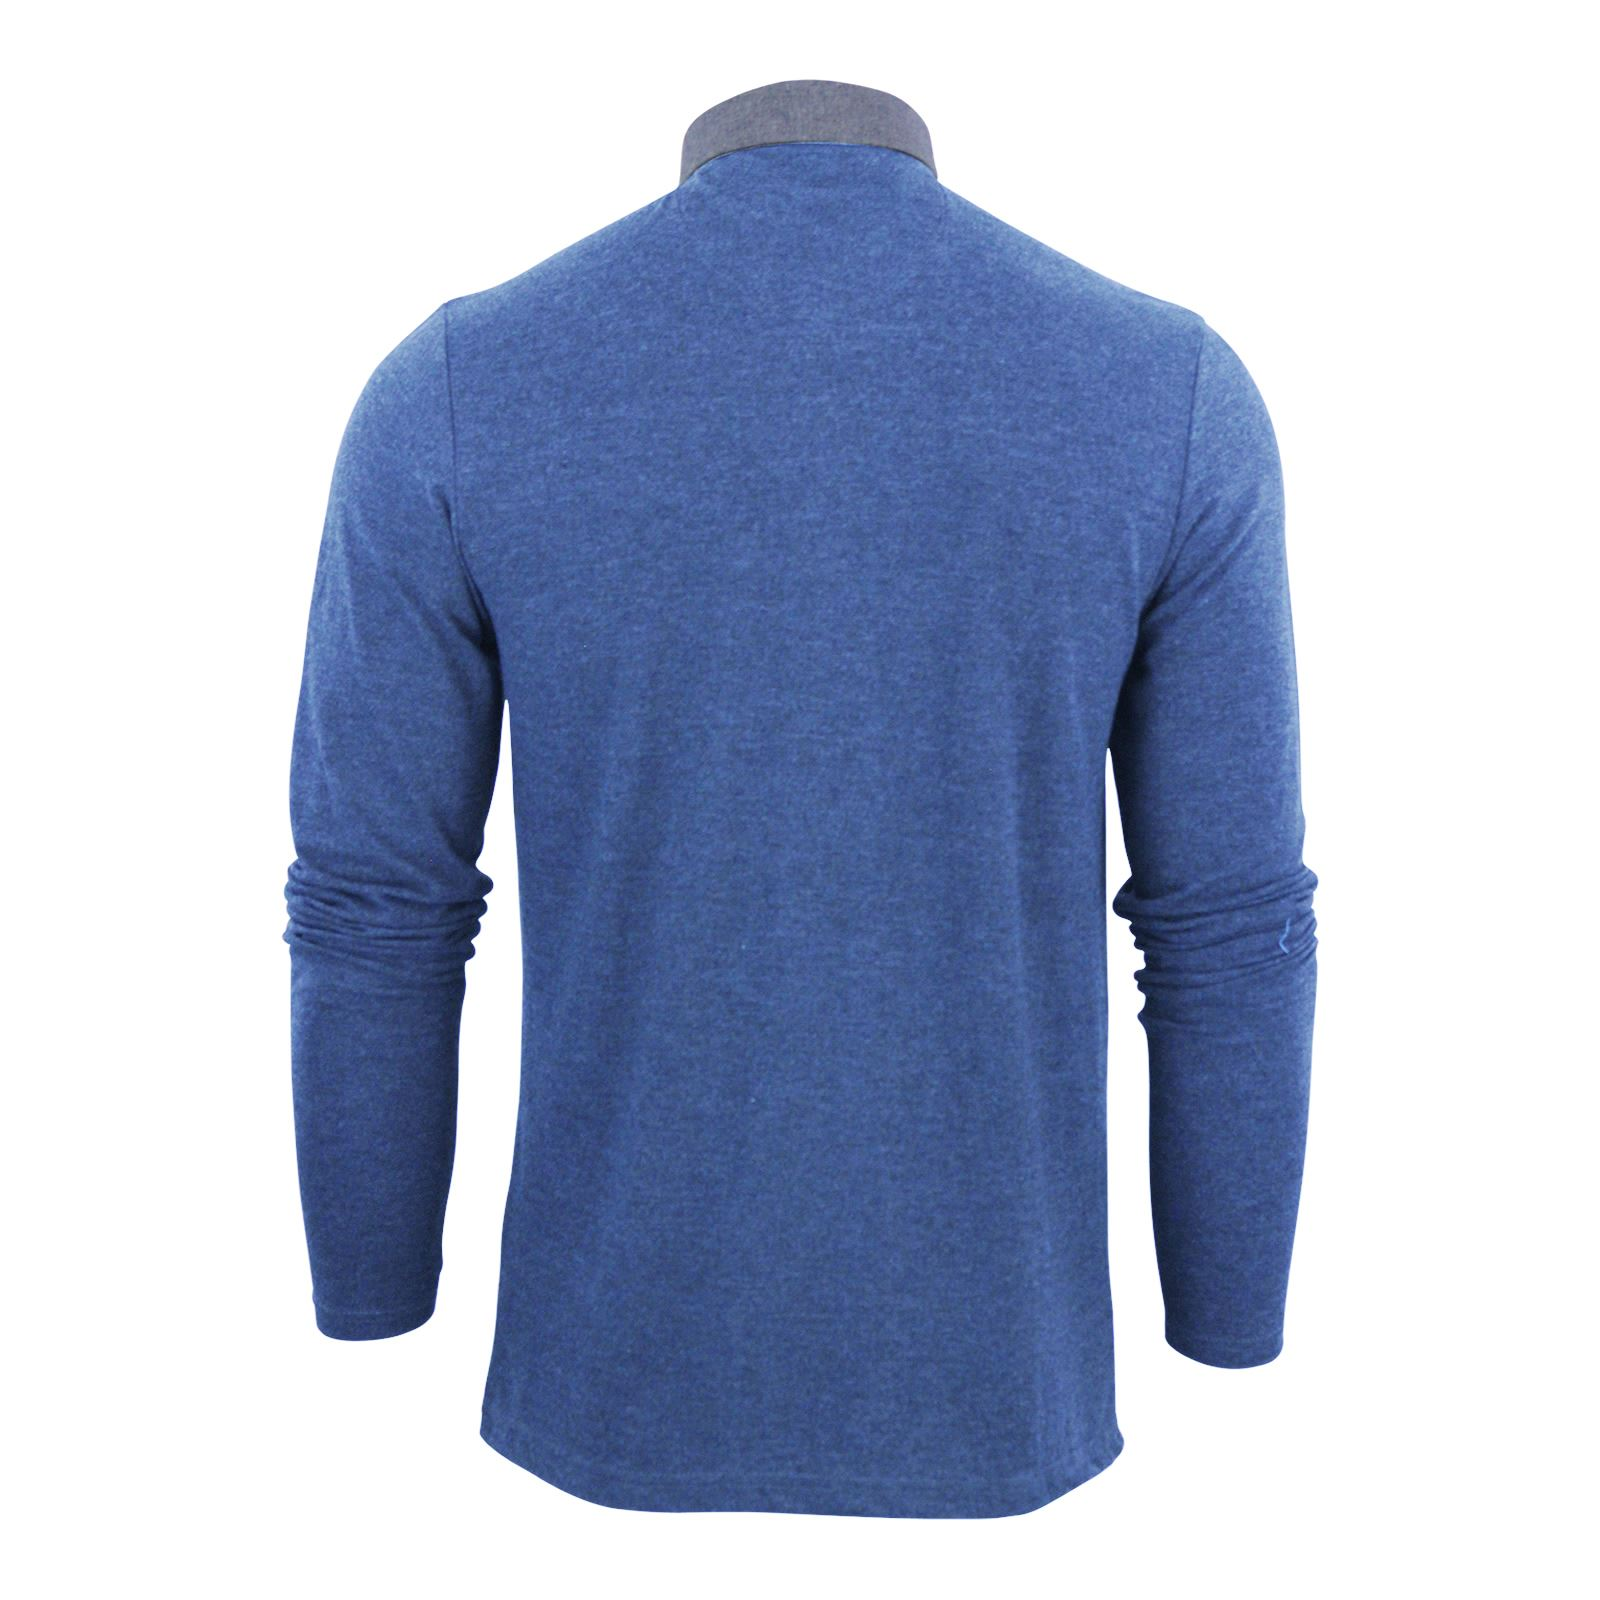 Mens-Polo-T-Shirt-Brave-Soul-Hera-Cotton-Long-Sleeve-Casual-Top thumbnail 27